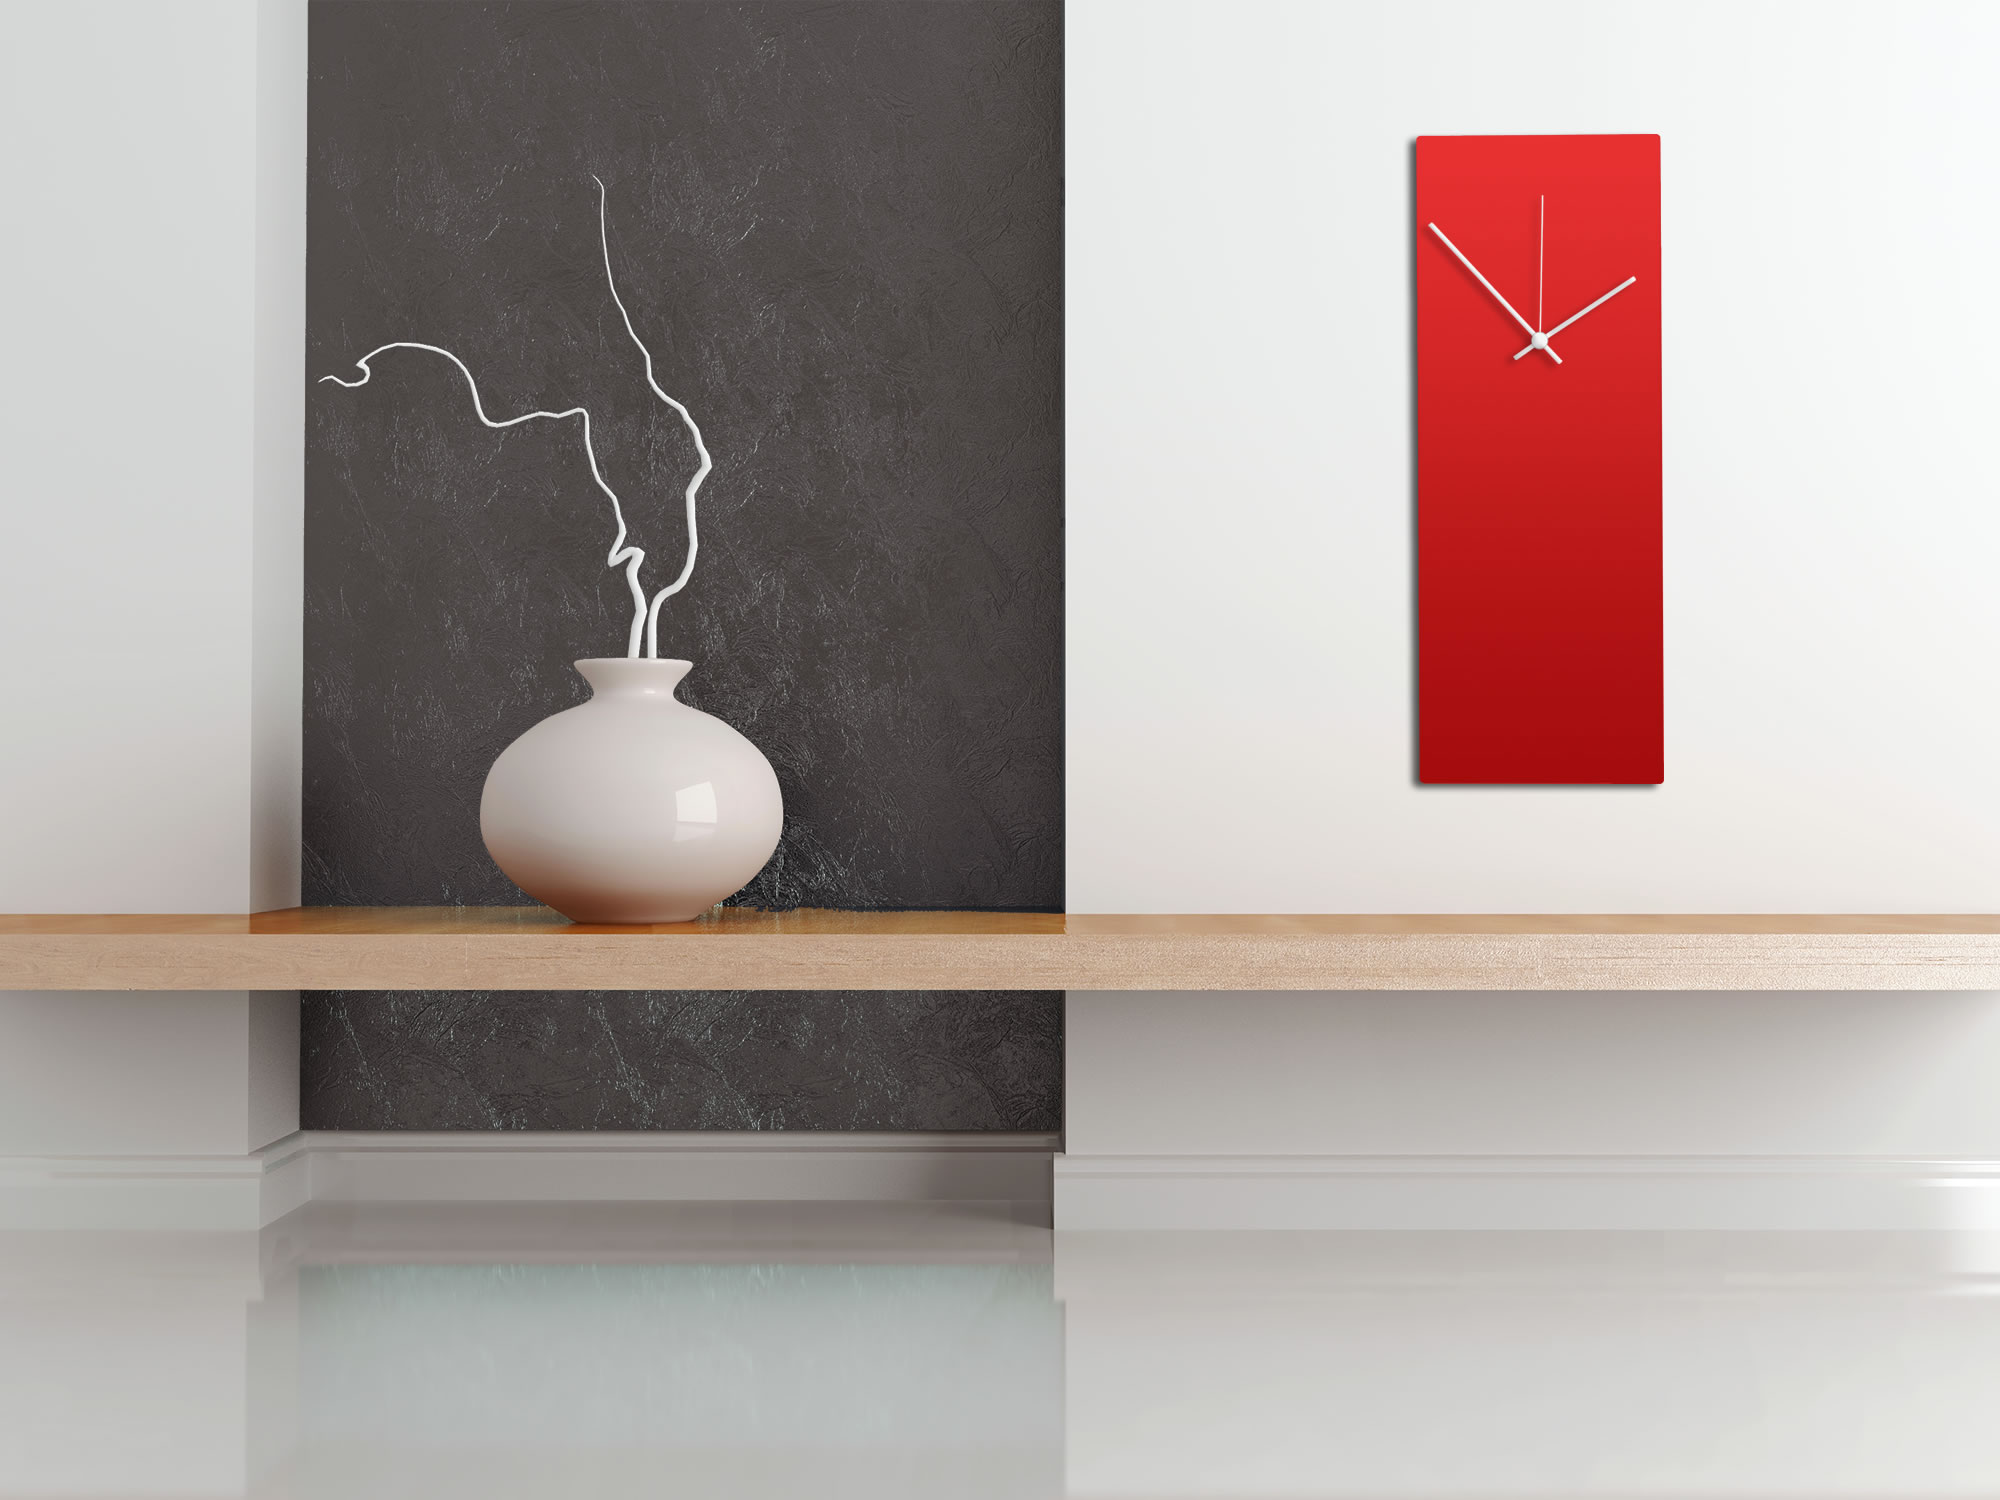 Redout White Clock - Minimalist Red Wall Clock - Lifestyle Image